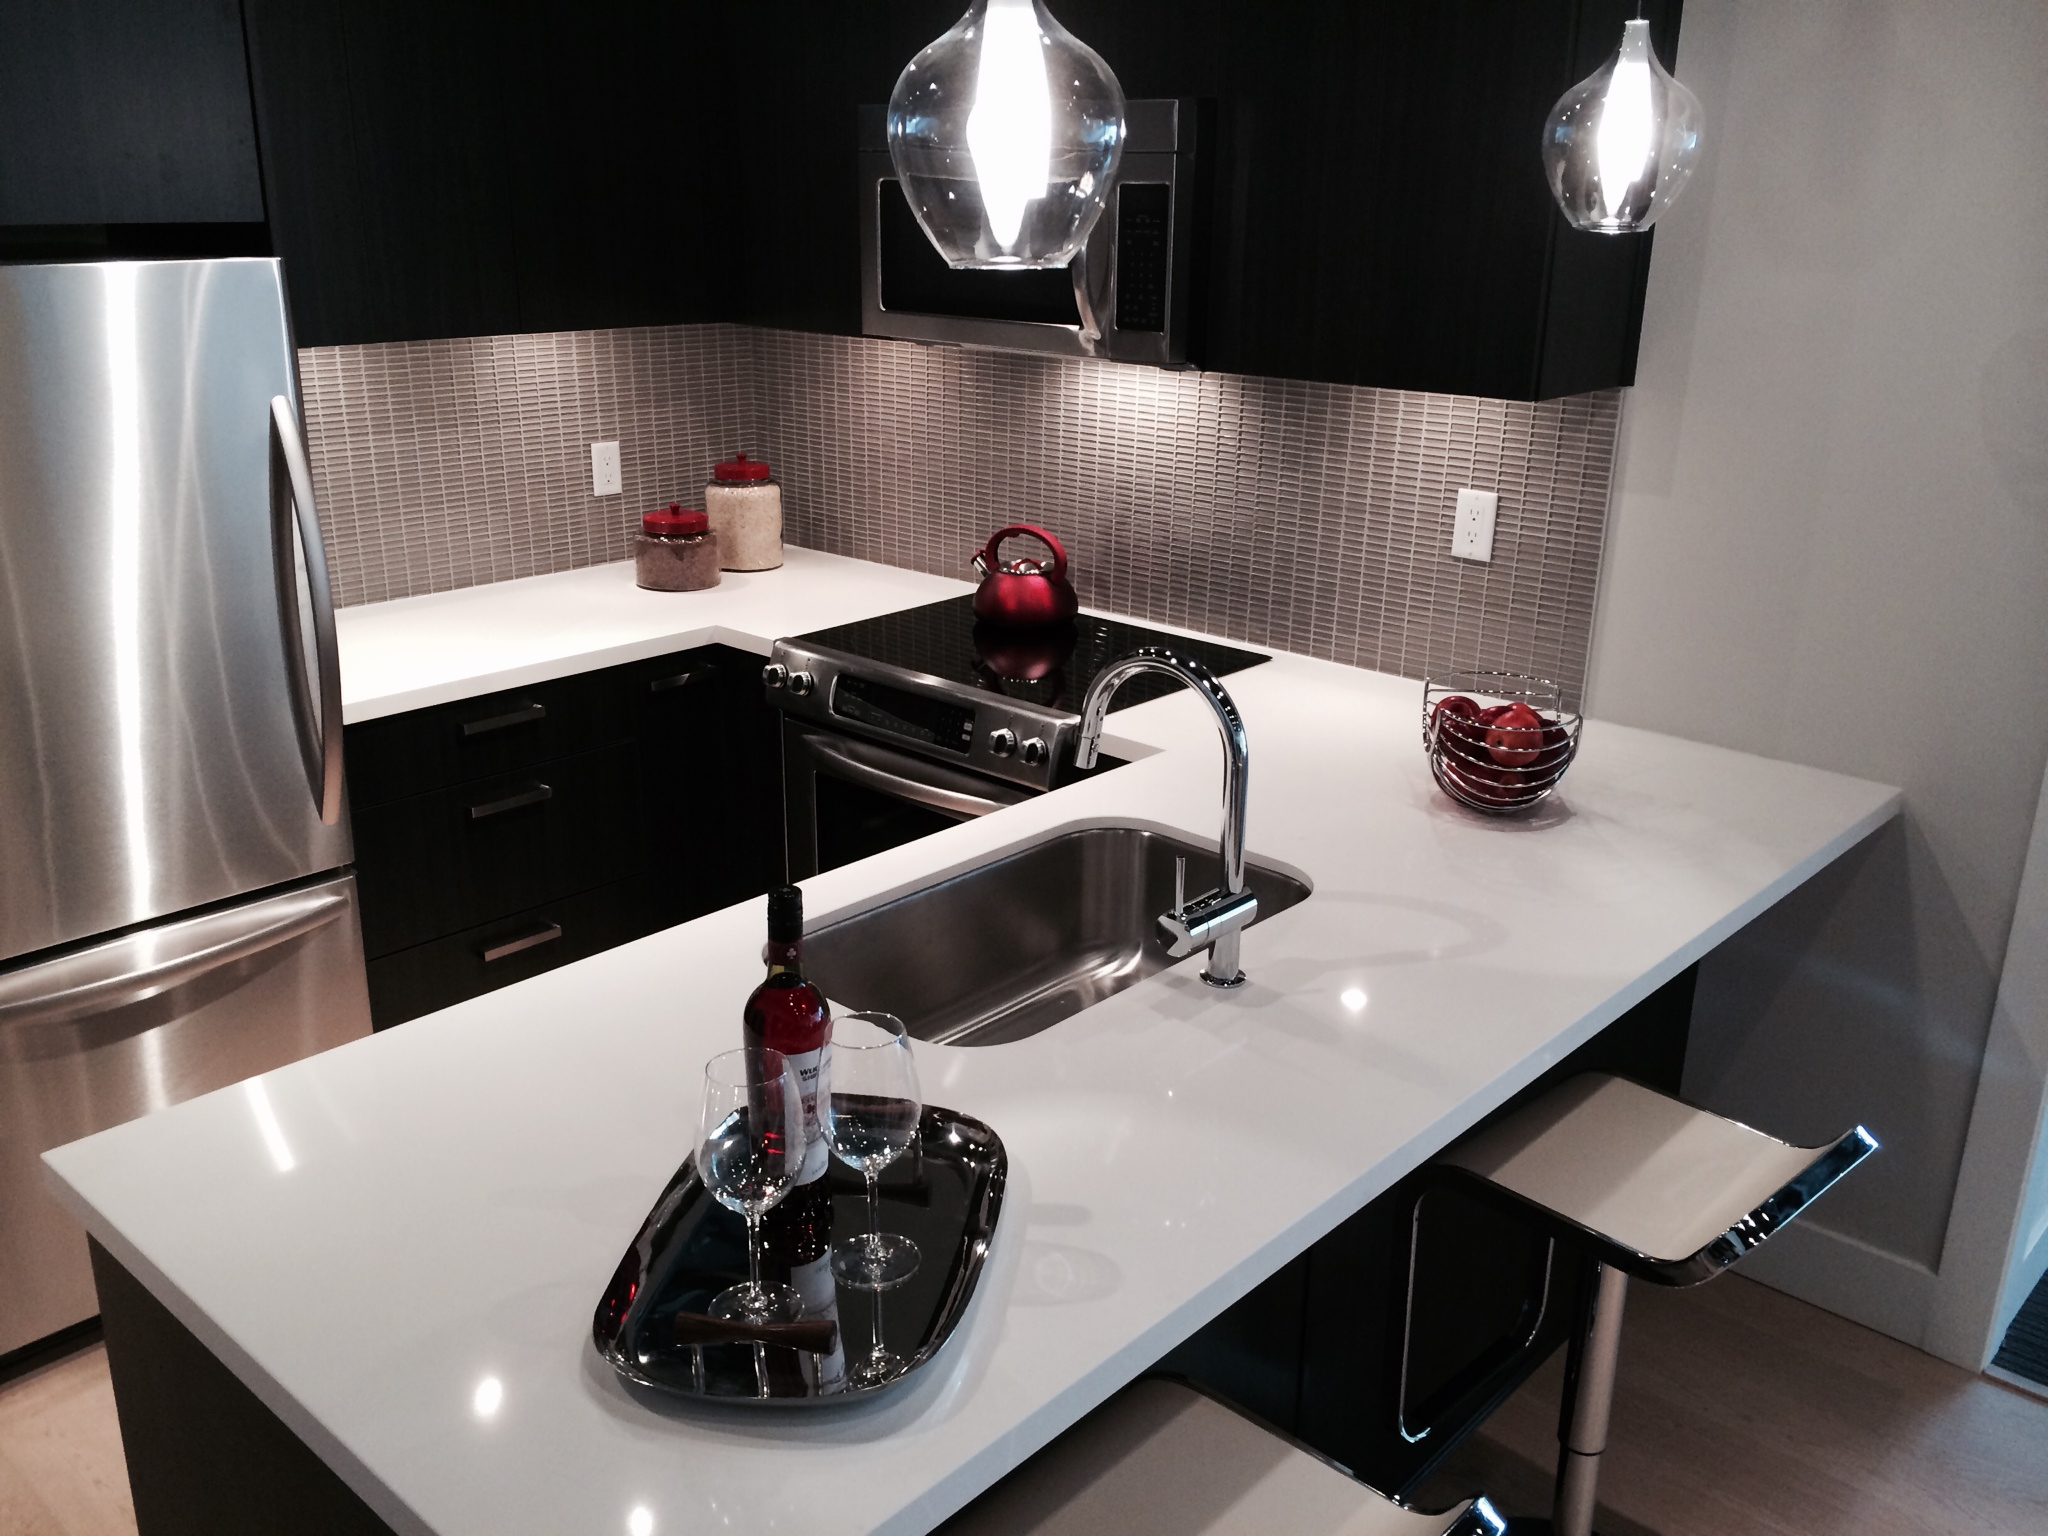 Midtown Vancouver Kitchen 3 at Display Centre